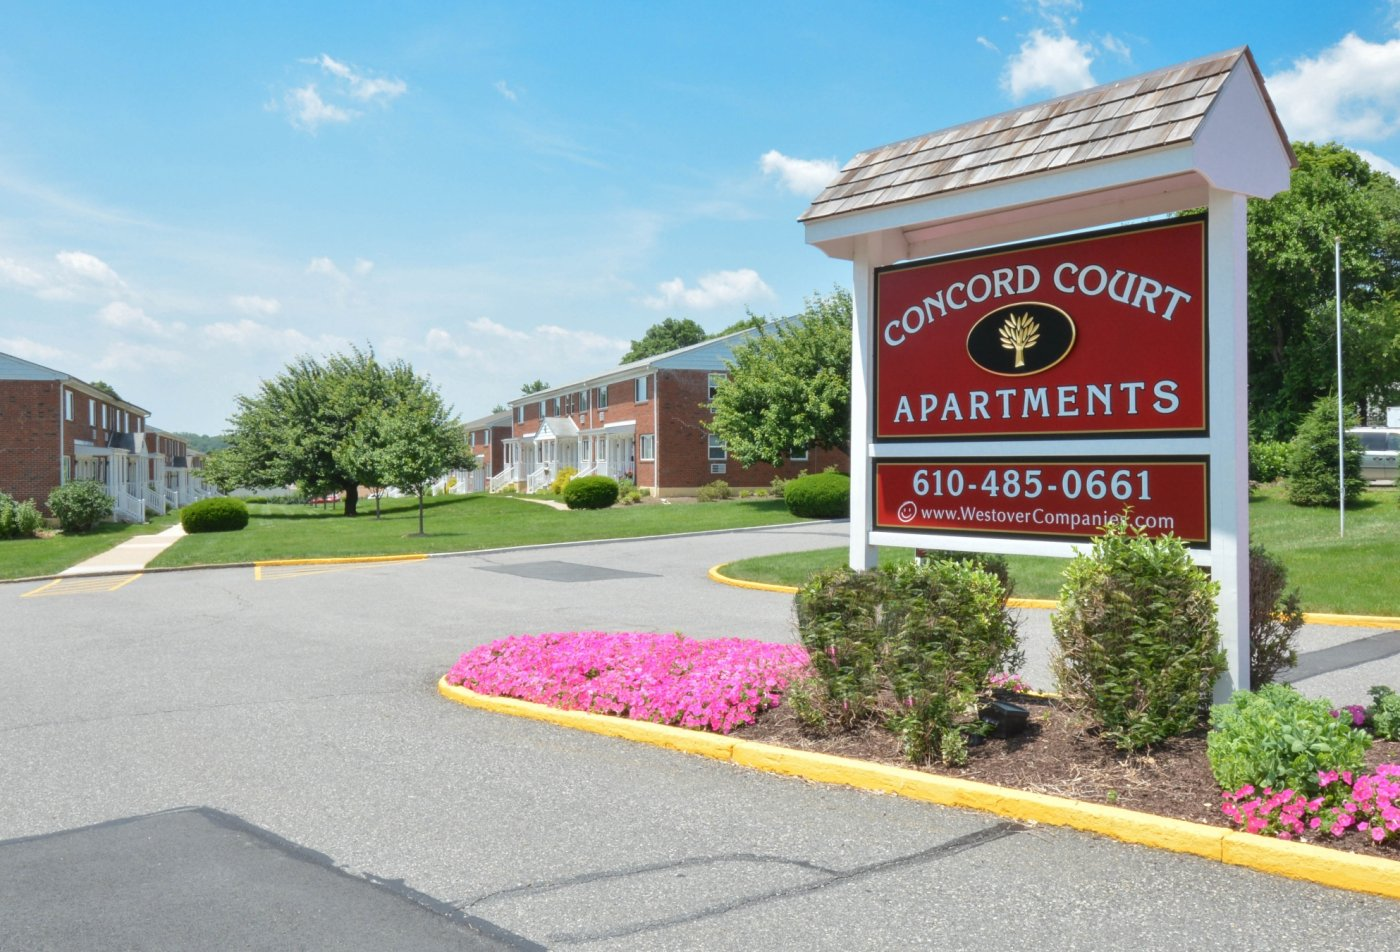 Apartments in Aston, PA | Concord Court Apartments